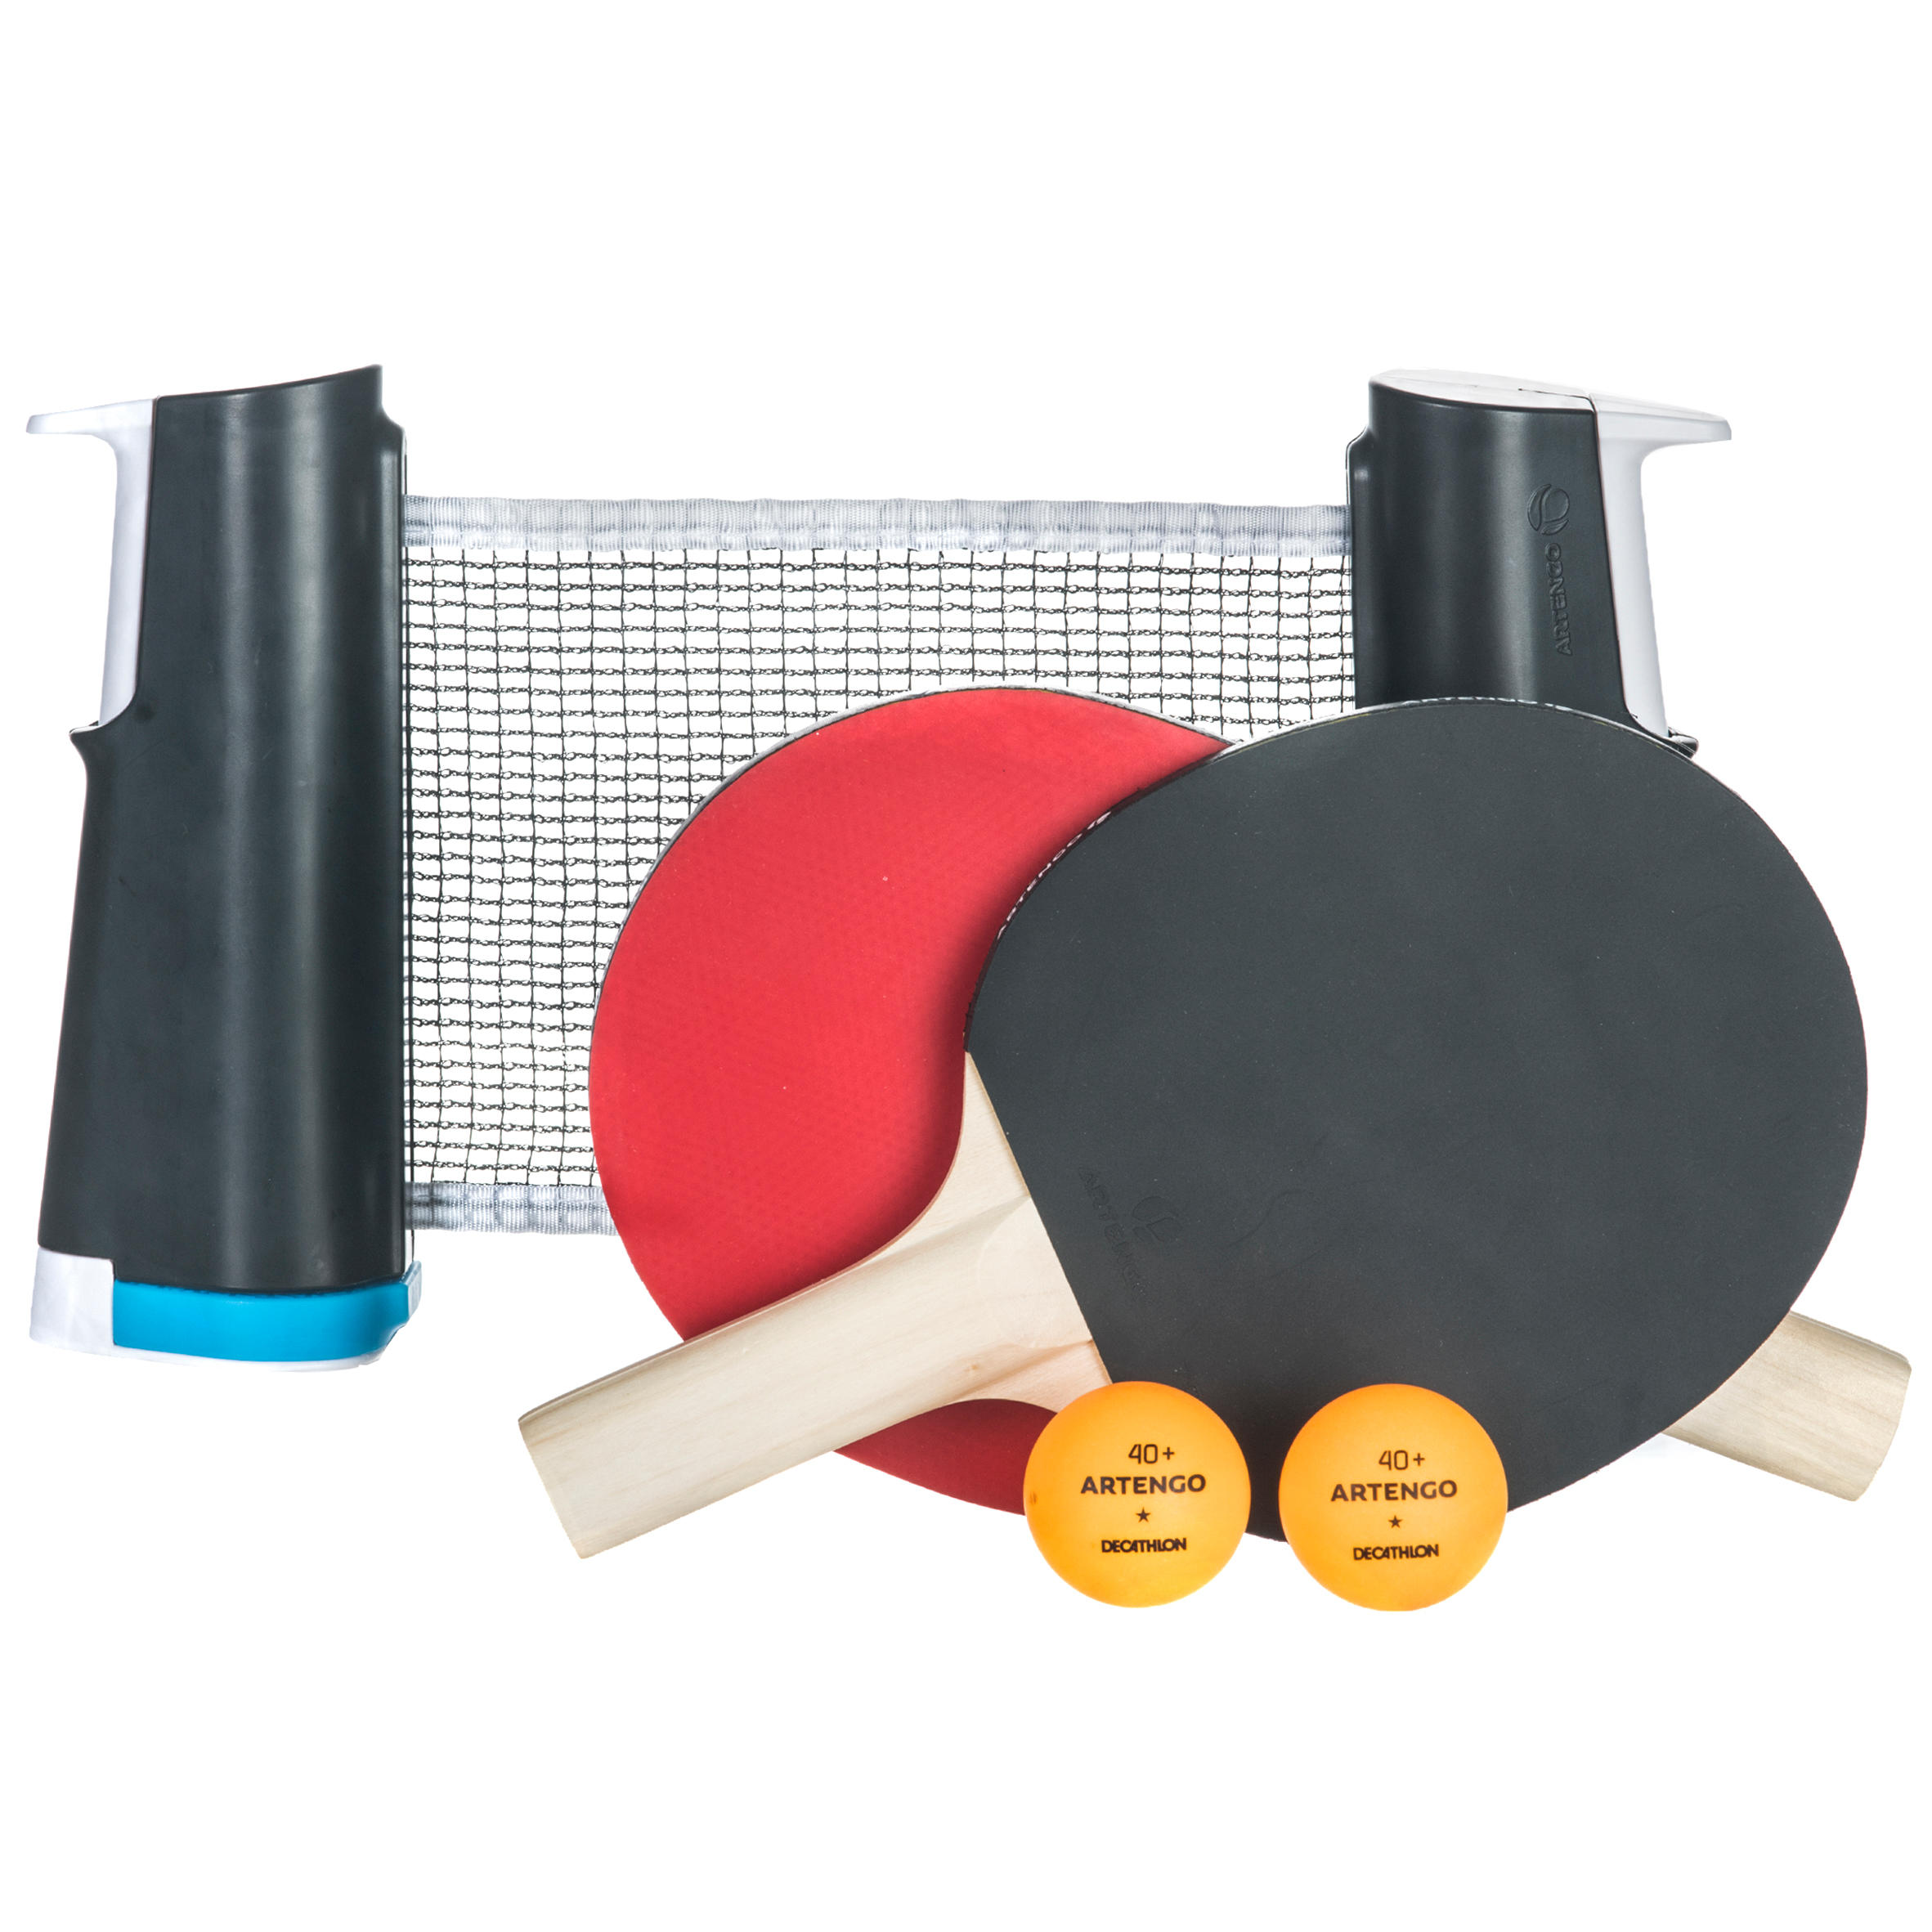 Standard Rollnet Set of 2 Free Table Tennis Paddle and 3 Balls